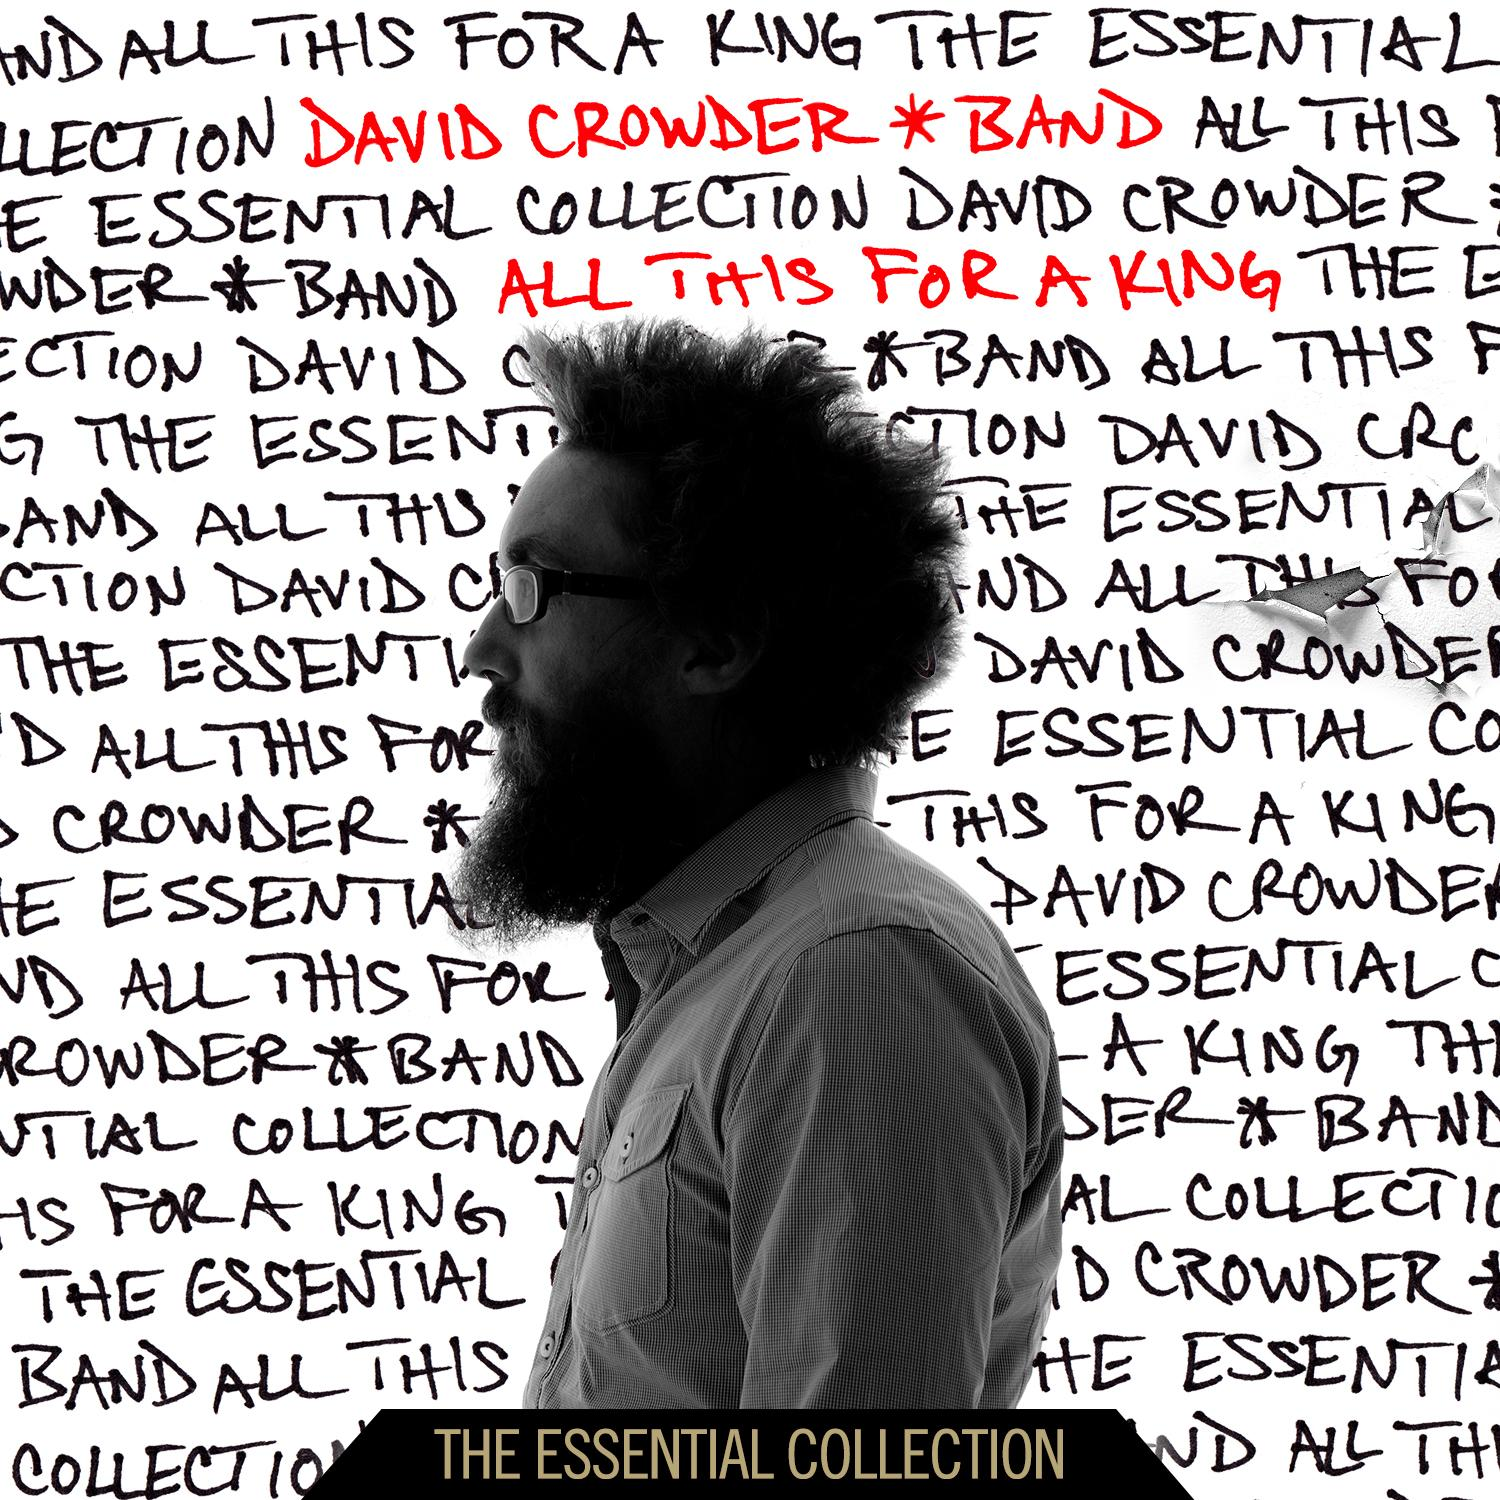 David Crowder*Band - All This For A King: The Essential Collection (CD)